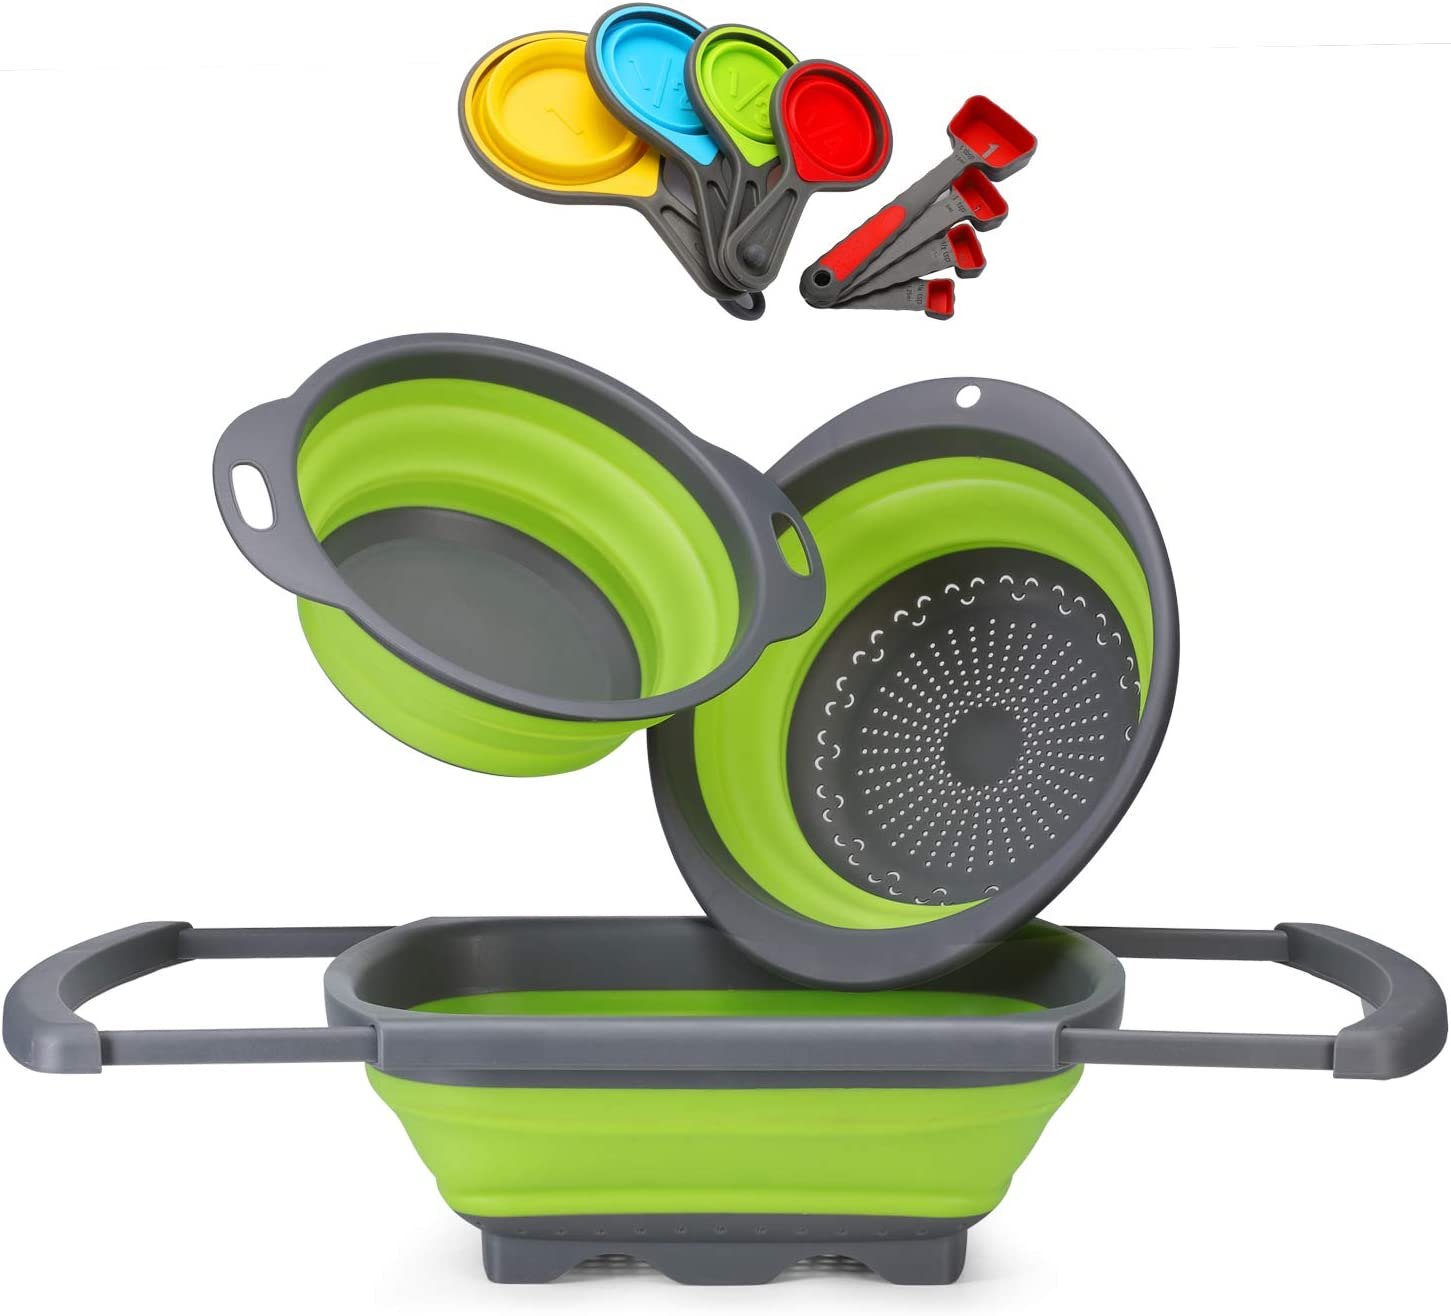 Glotoch Silicone Collapsible Colander Set of 12-Includes 1pc 6 Quart Over the Sink Colander, 2pc 4 Quart Round Foldable Colander Strainer. 8 piece Measuring Cups and Spoons Set BPA Free Green